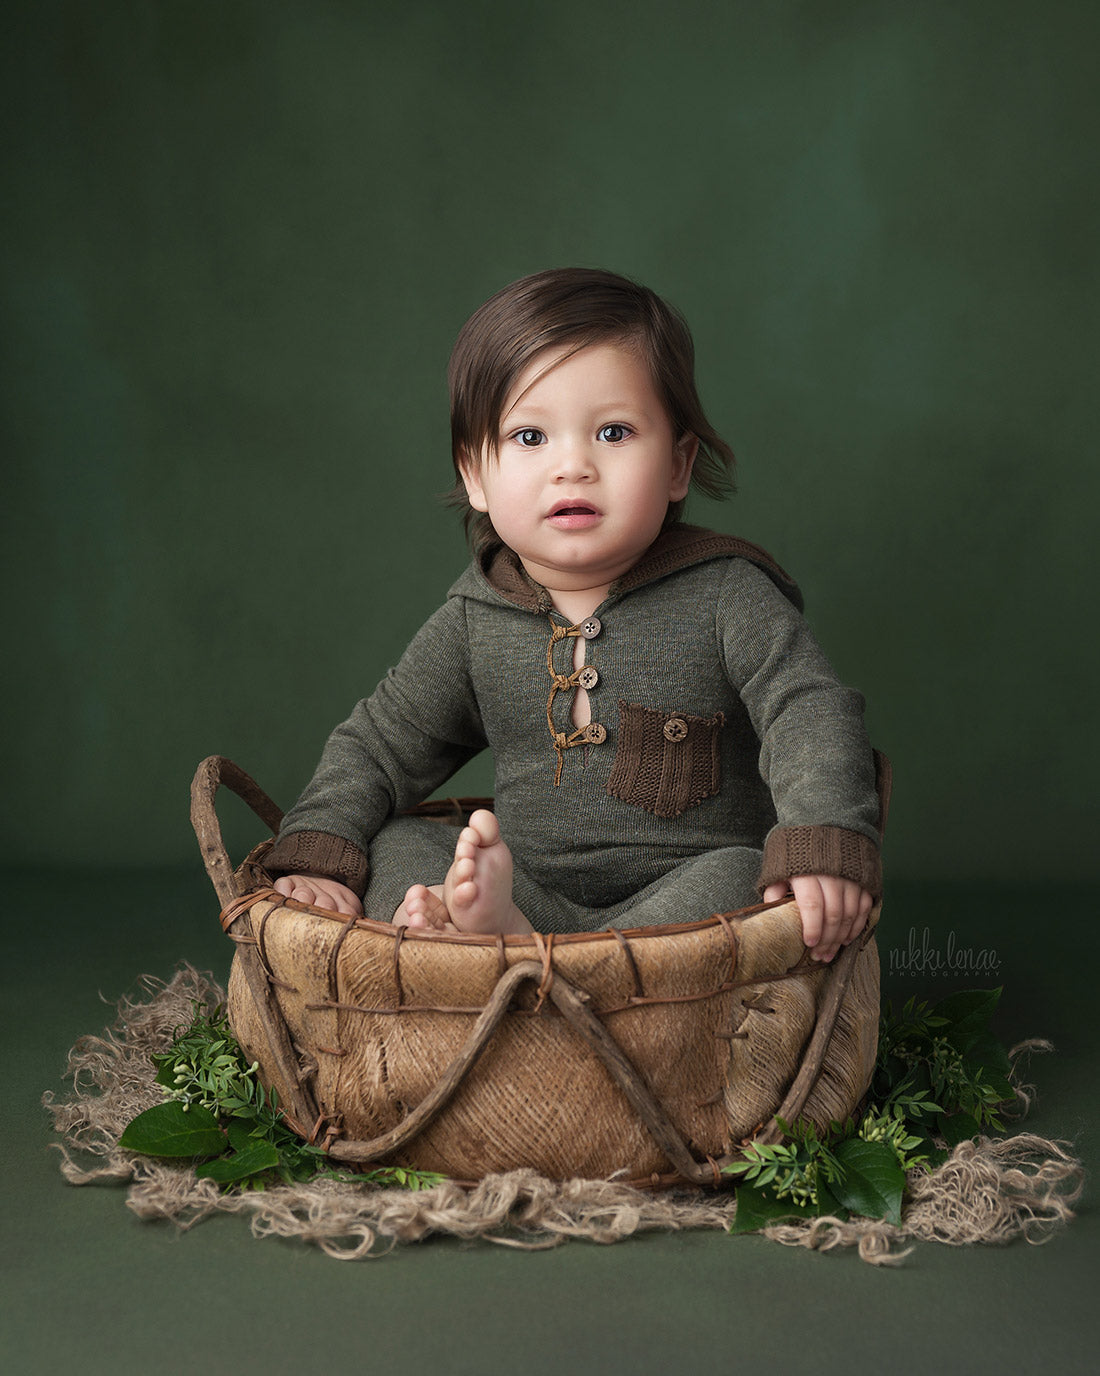 Newborn image with the deep woods backdrop from Intuition